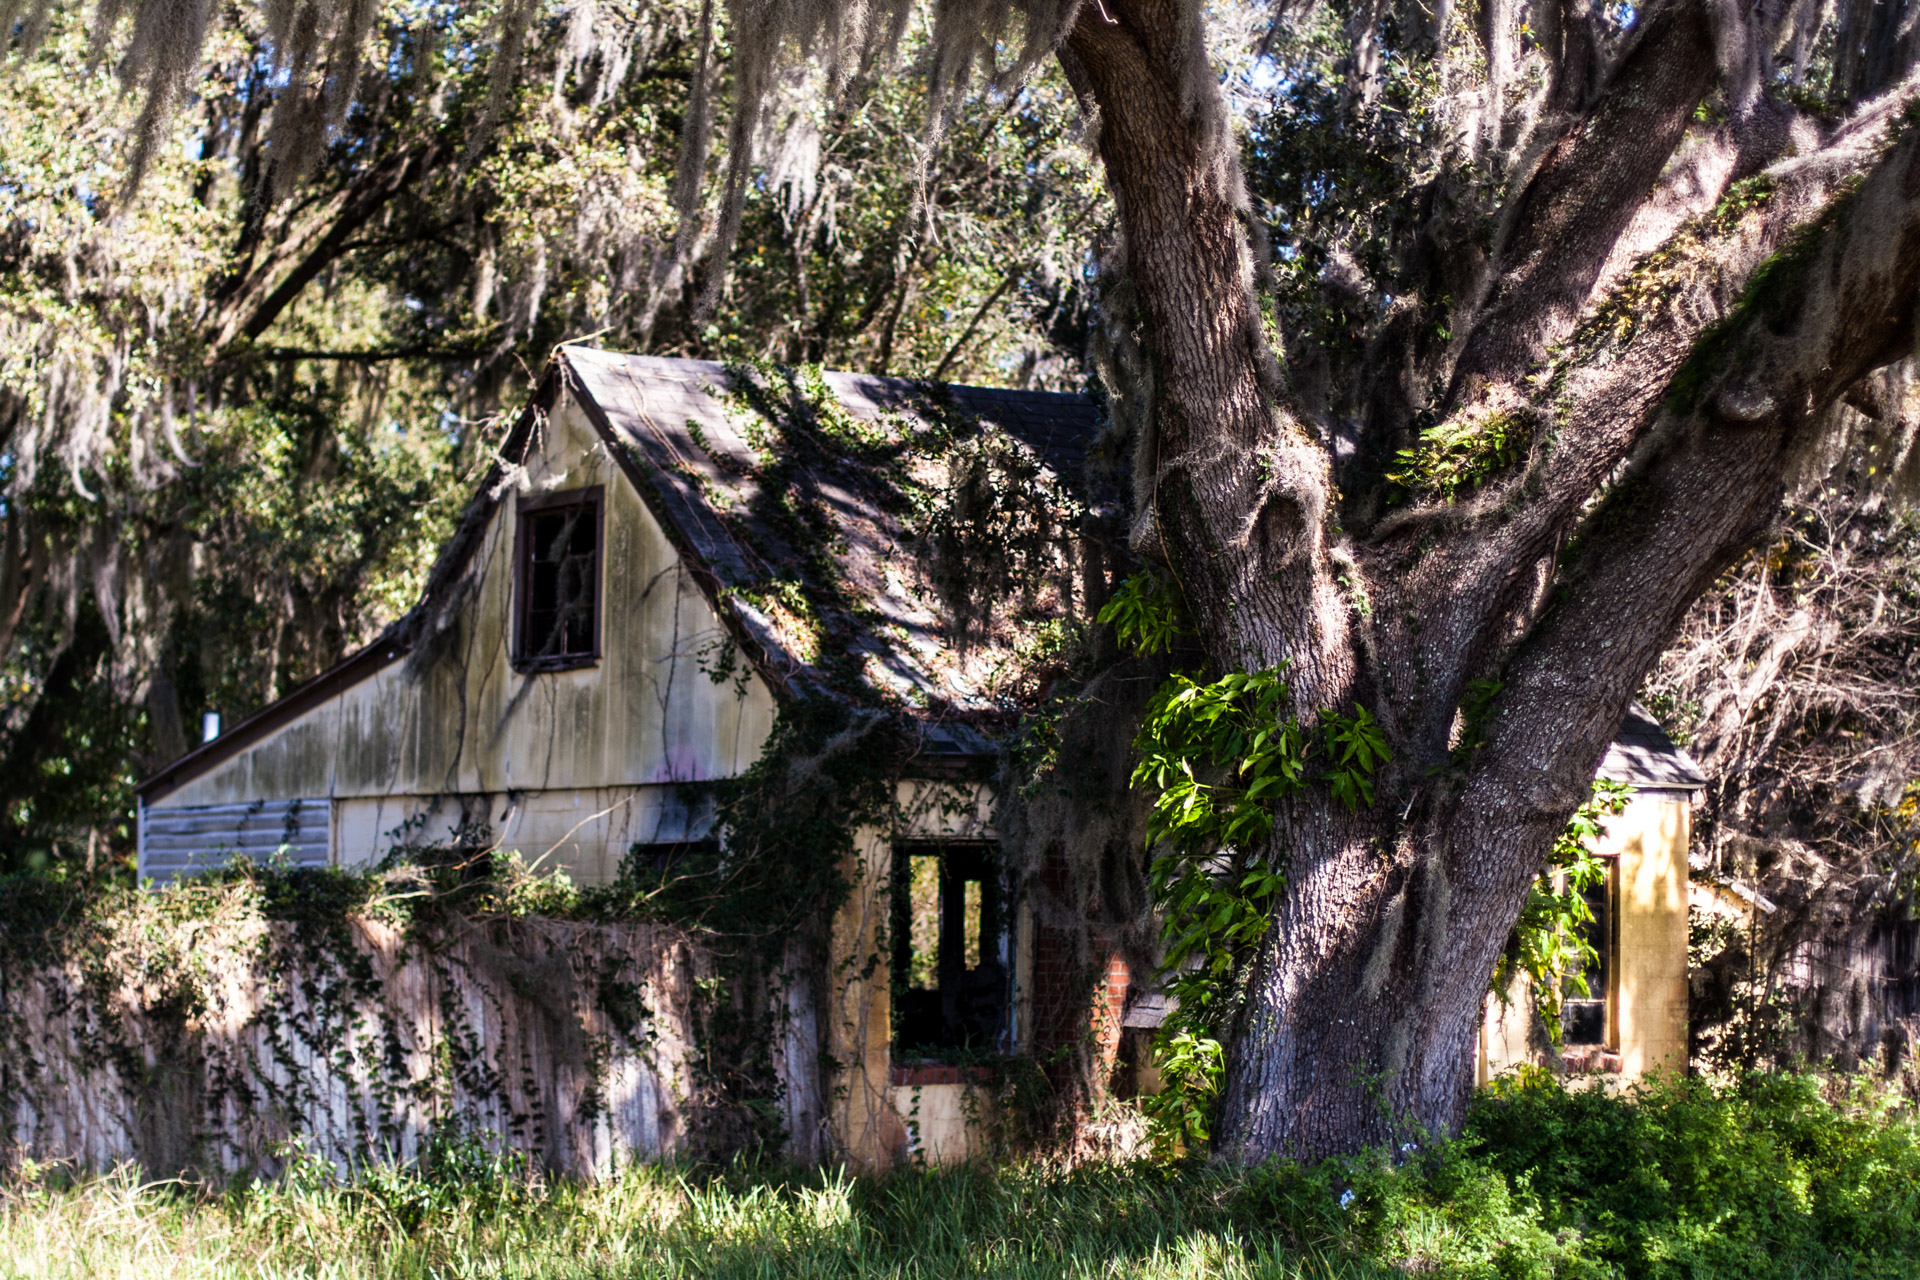 Leesburg, Florida - Wispy Tree House (side close)